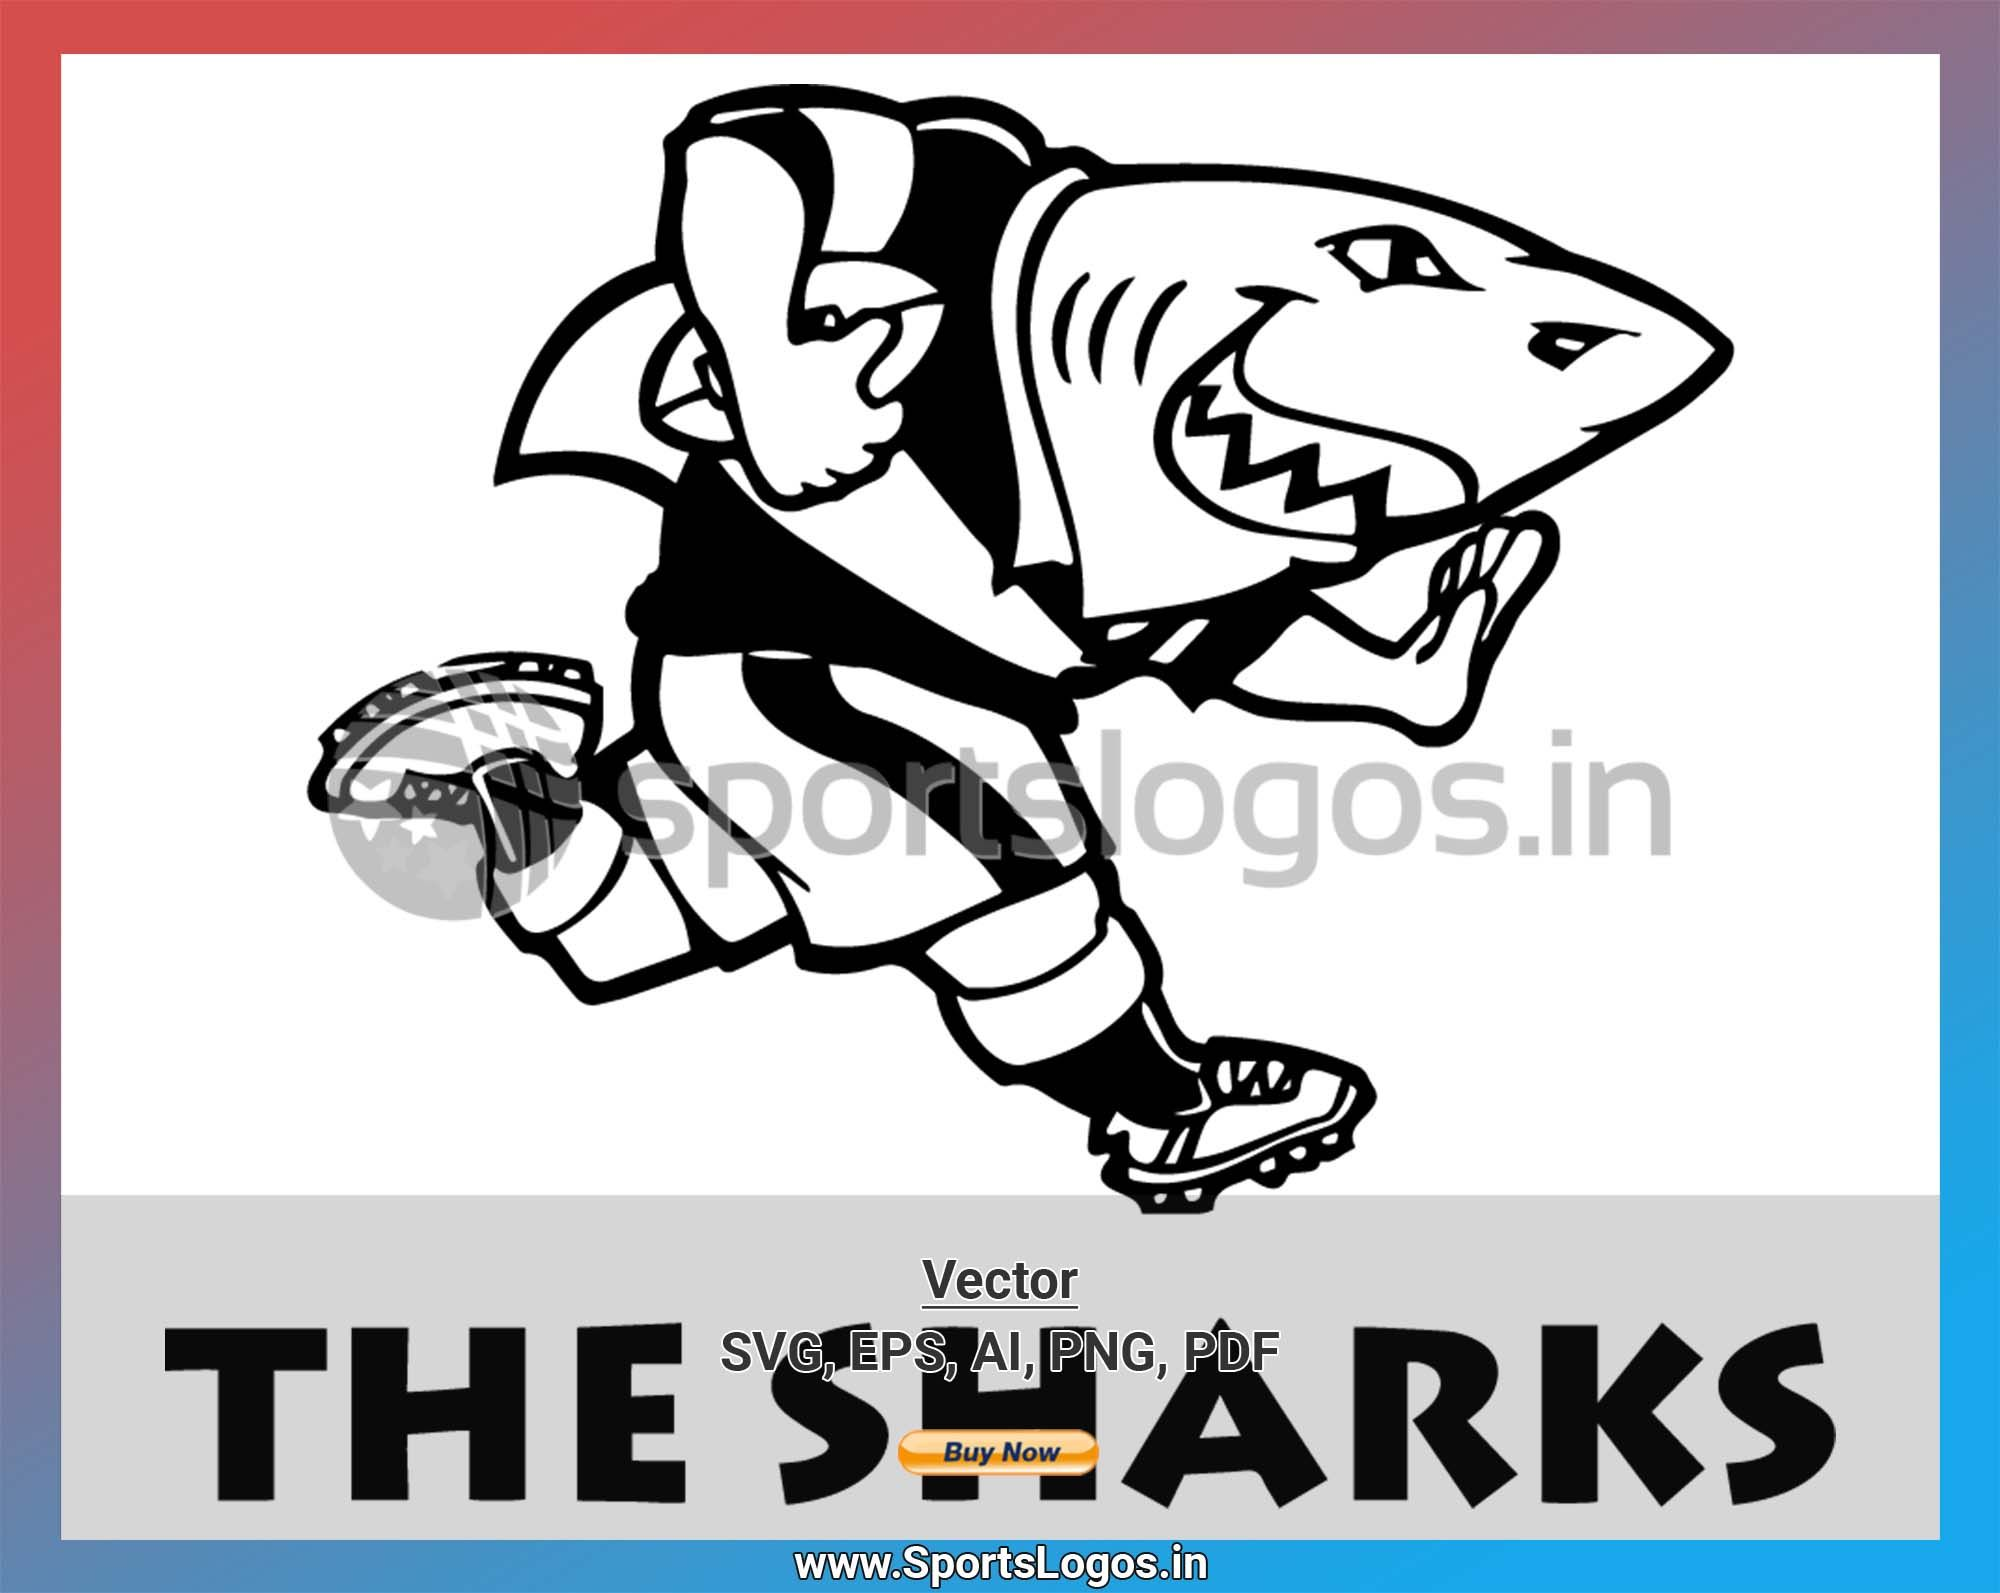 Sharks Misc Sports Vector Svg Logo In 5 Formats Spln003977 Sports Logos Embroidery Vector For Nfl Nba Nhl Mlb Milb And More Shark Logo Rugby Logo Embroidery Logo